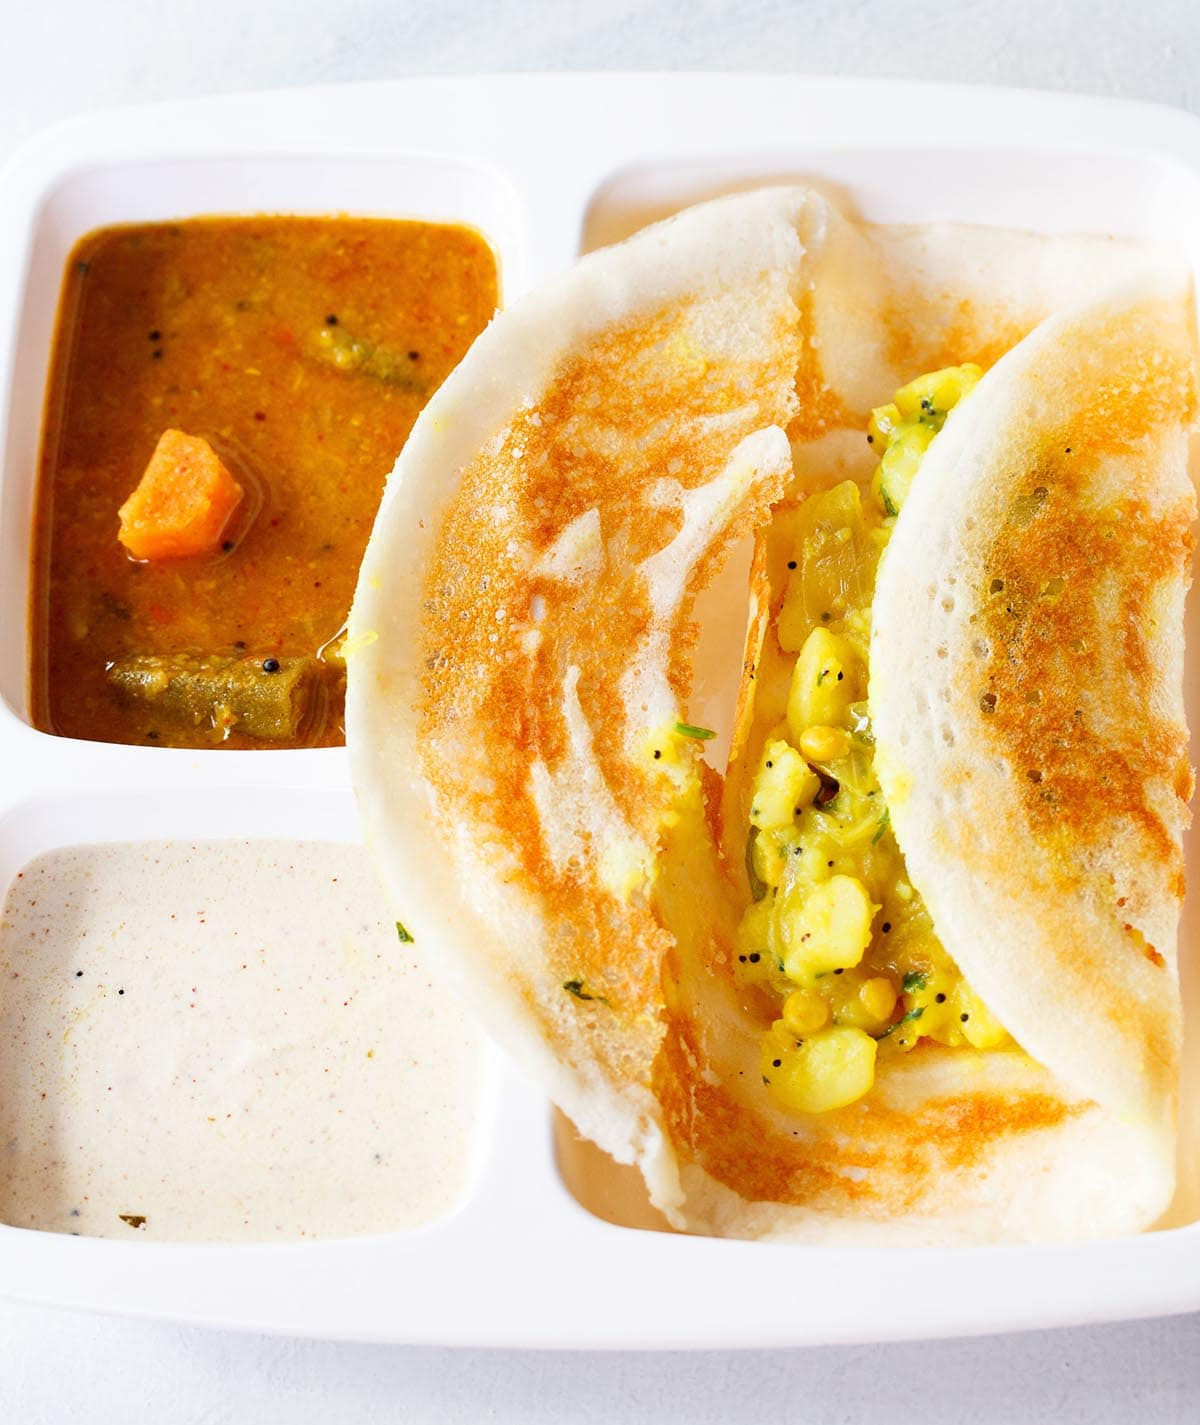 masala dosa opened showing the potato stuffing in a white partitioned tray with sambar and coconut chutney